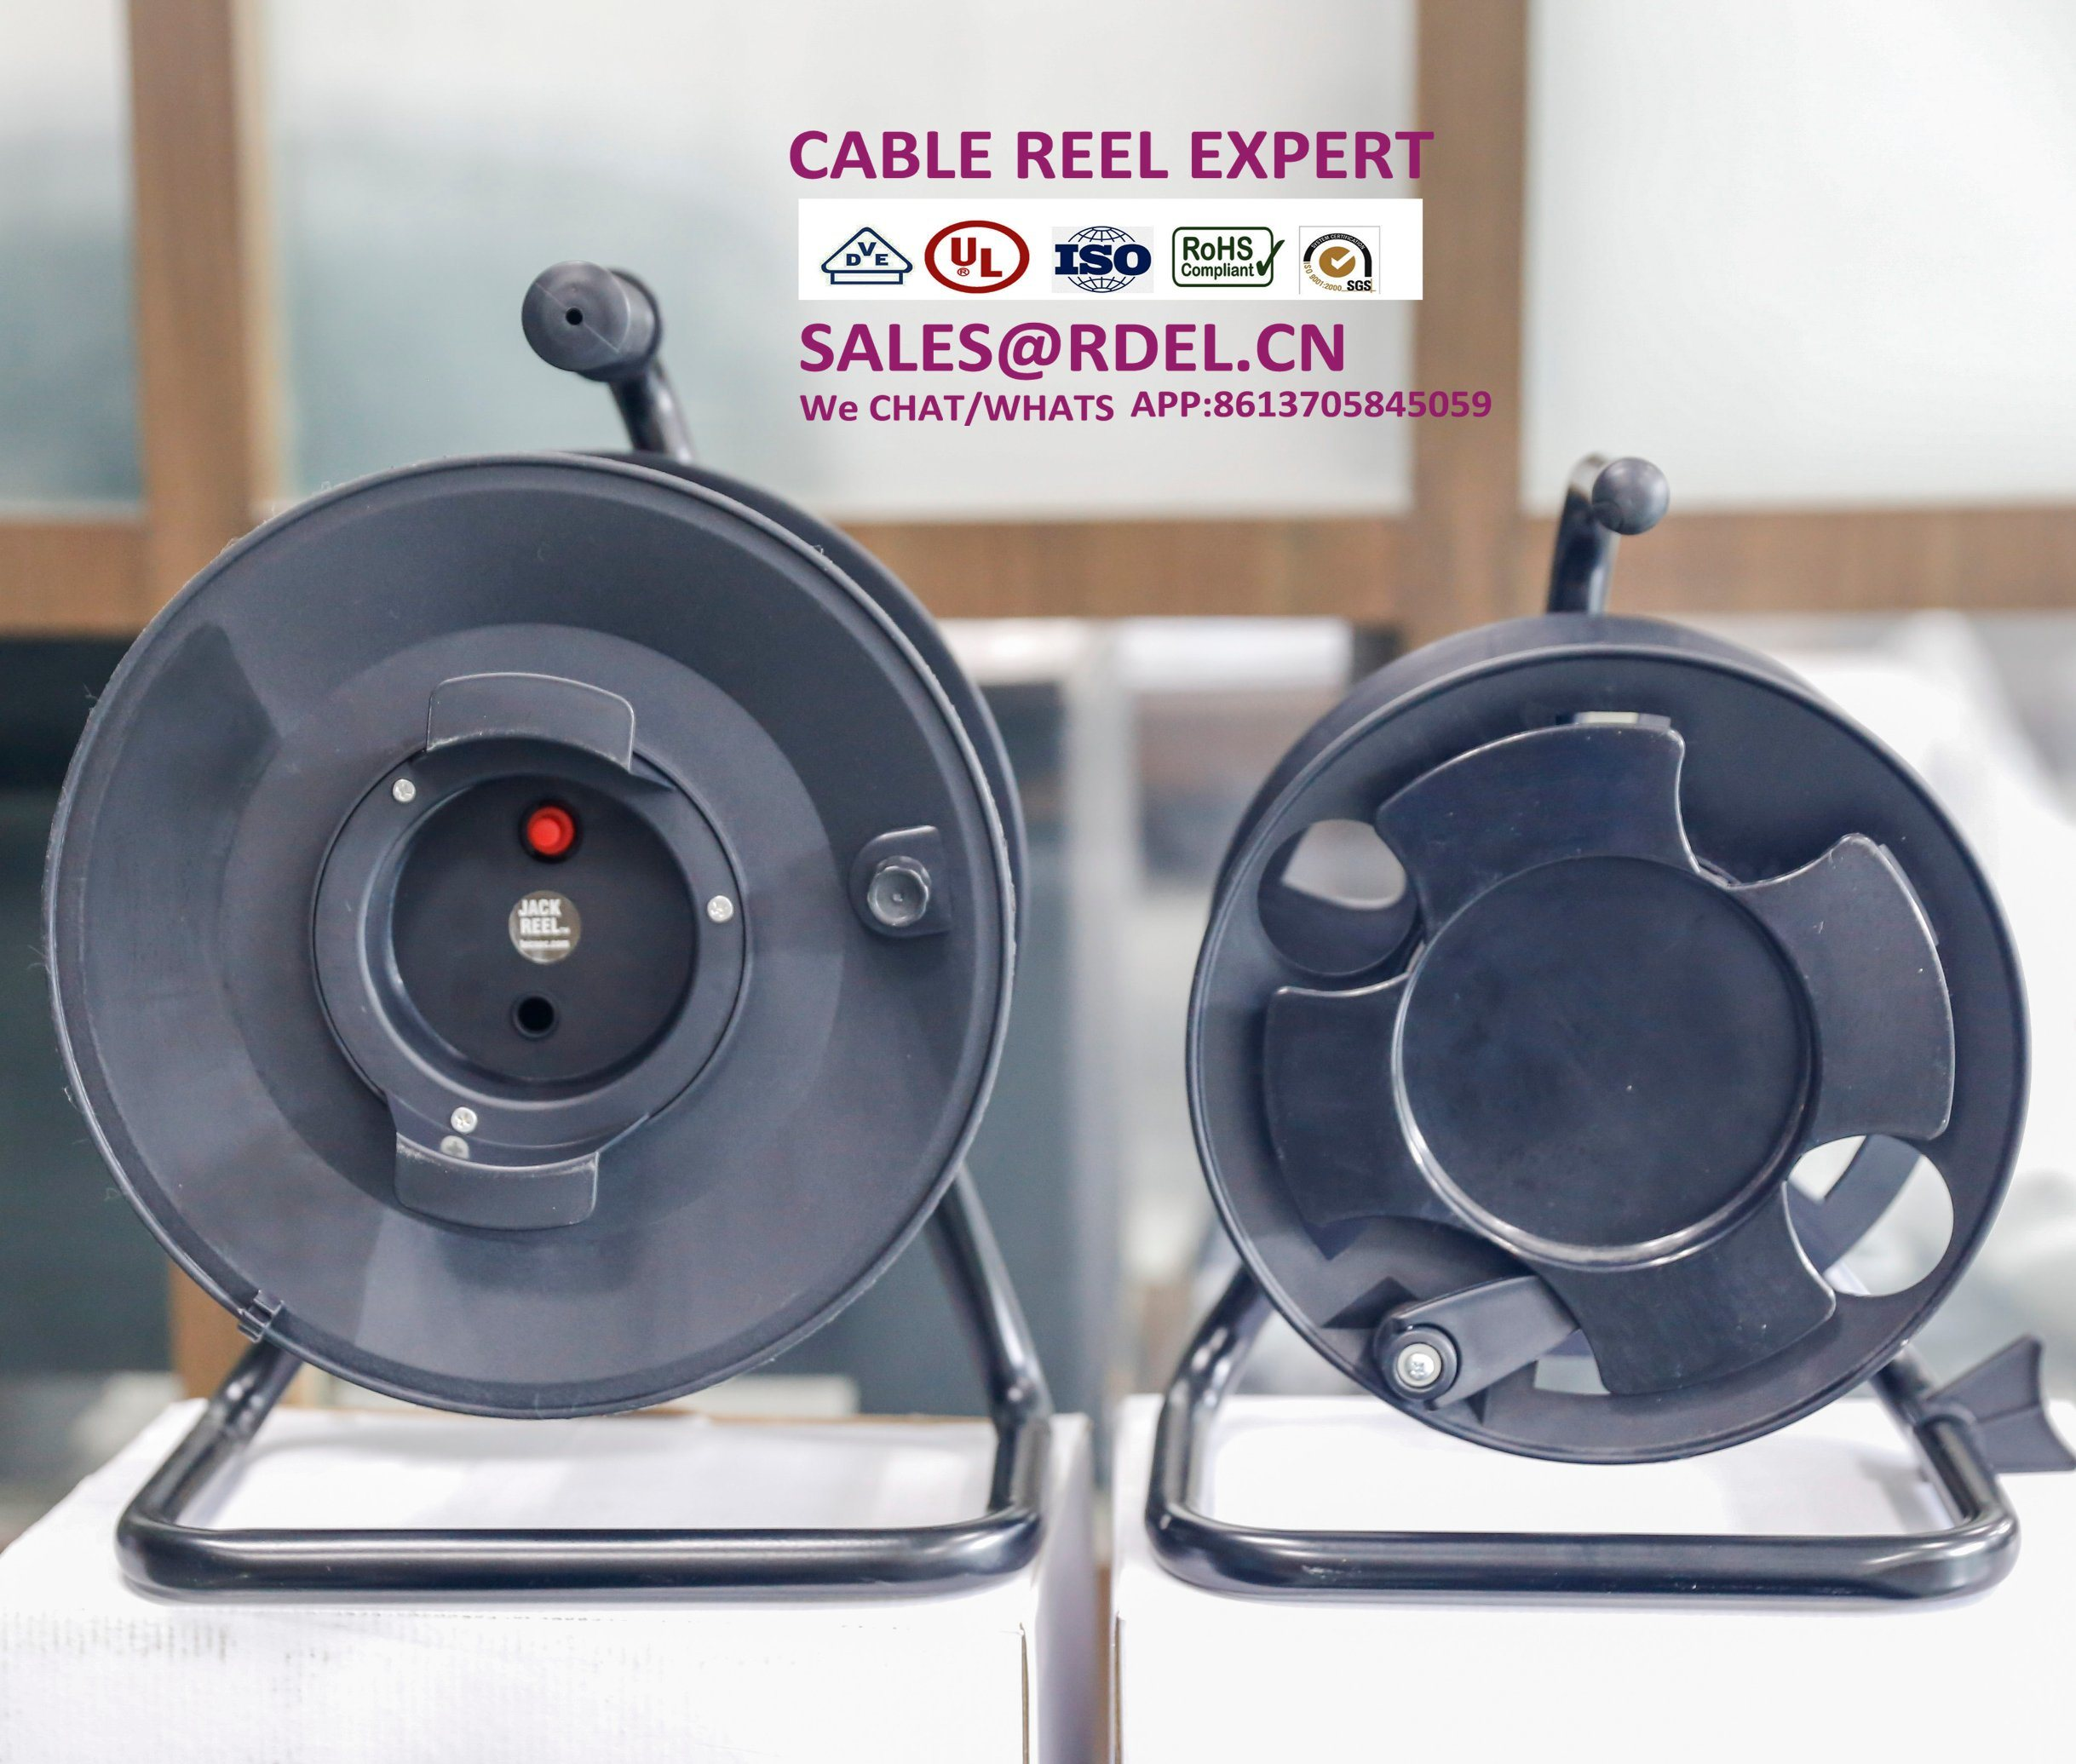 Retractable Cord Reel Electrical Reels China Automatic Cable Schuko Europe Extension Power Socket R